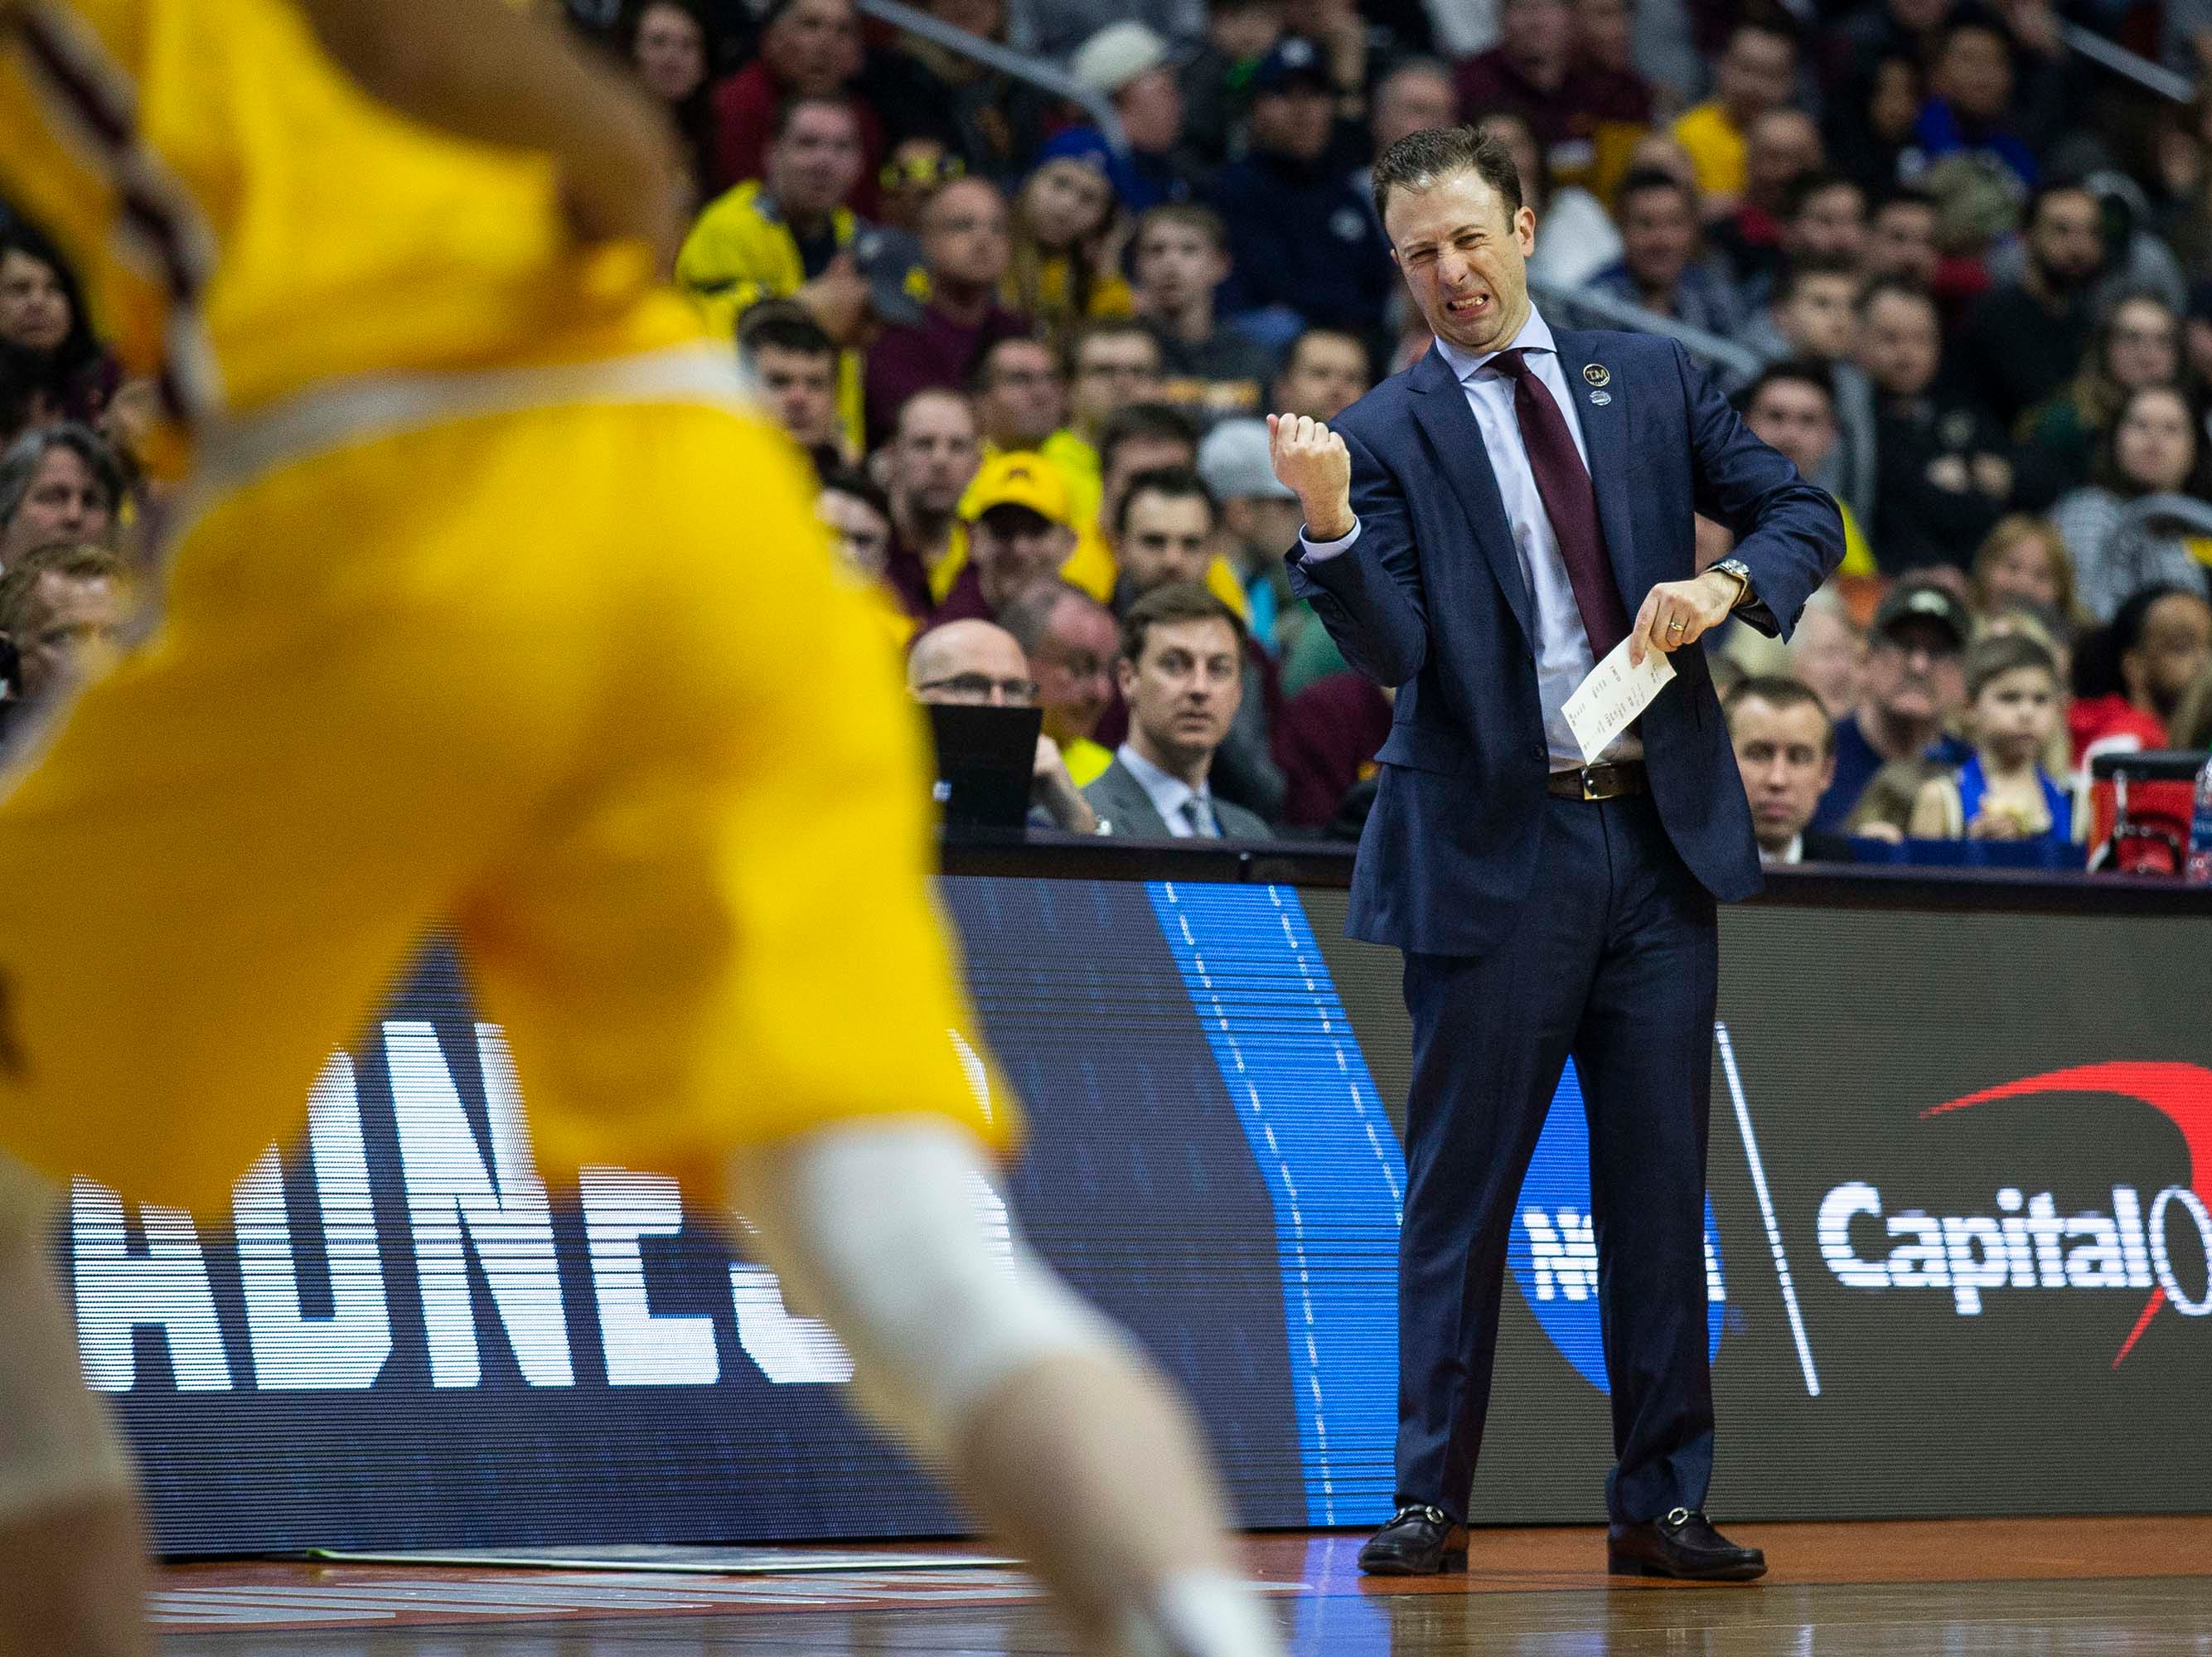 Minnesota Head Coach Richard Pitino makes a face while watching the NCAA Tournament second-round match-up between Minnesota and Michigan State on Saturday, March 23, 2019, in Wells Fargo Arena in Des Moines, Iowa.